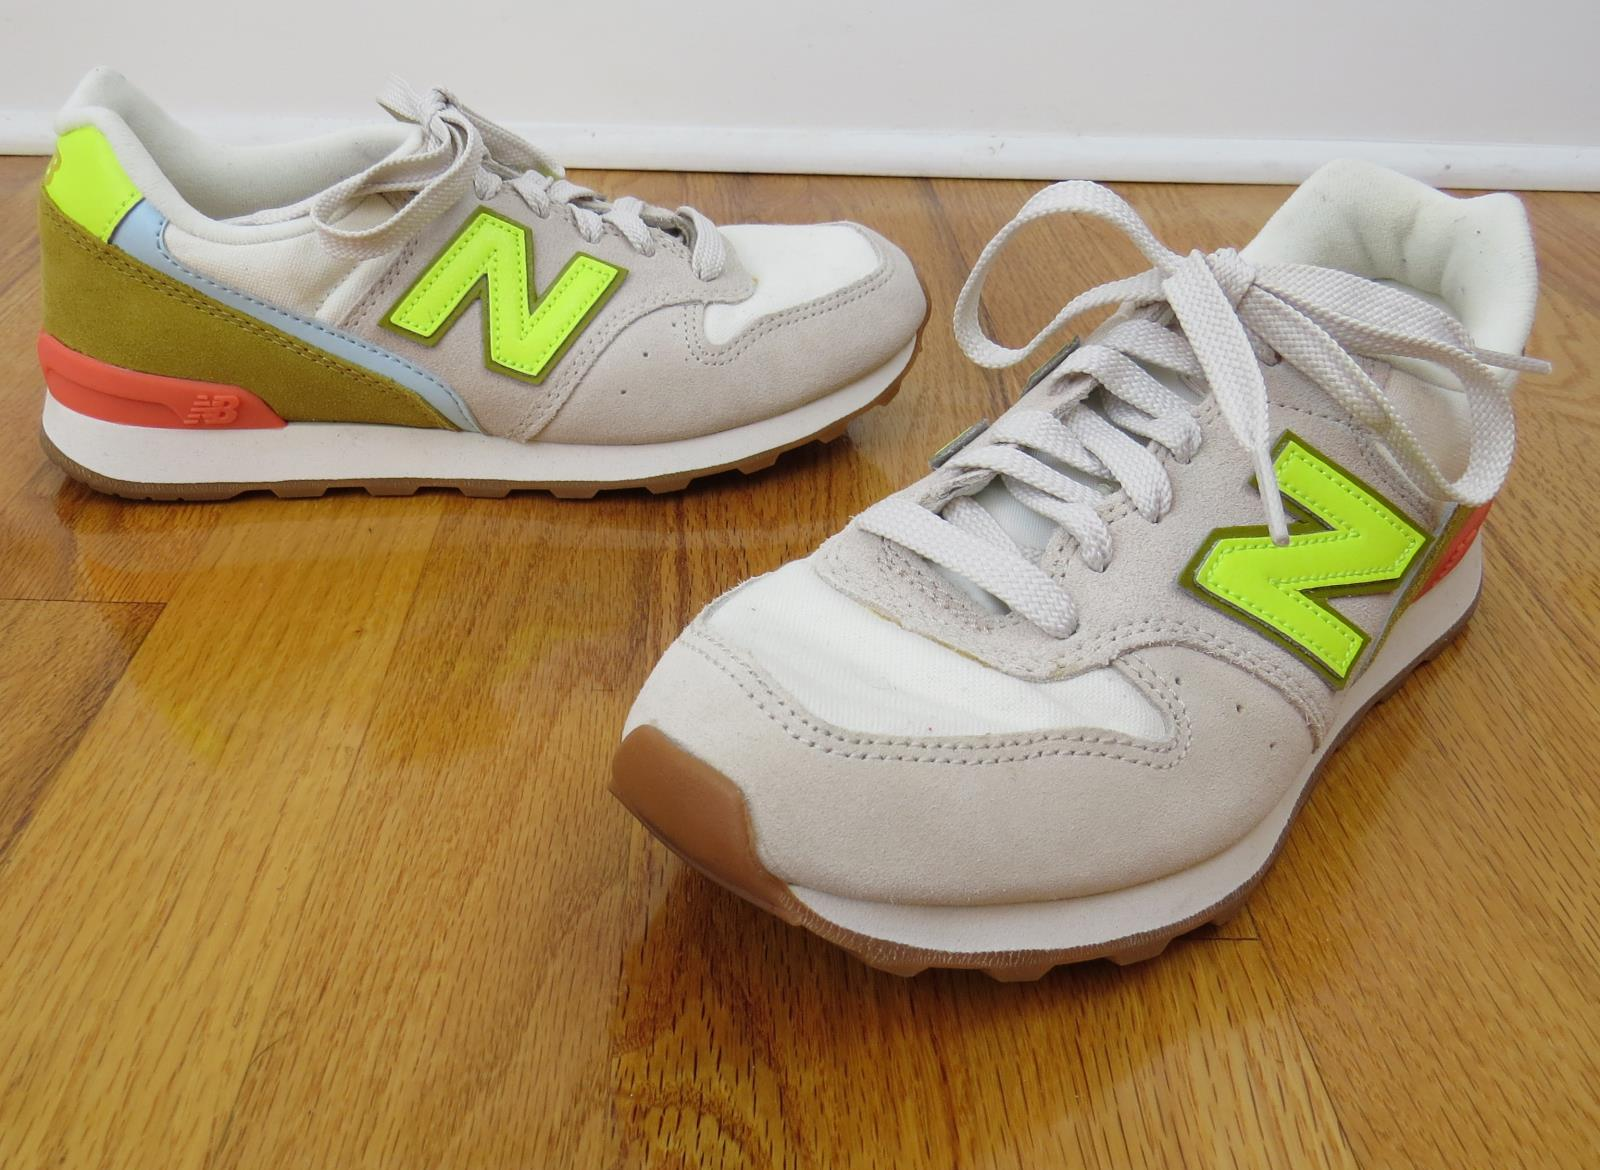 Details about JCrew X New Balance Collab Girls' 996 Sneakers Youth F1390 $65 Natural K6 TOE